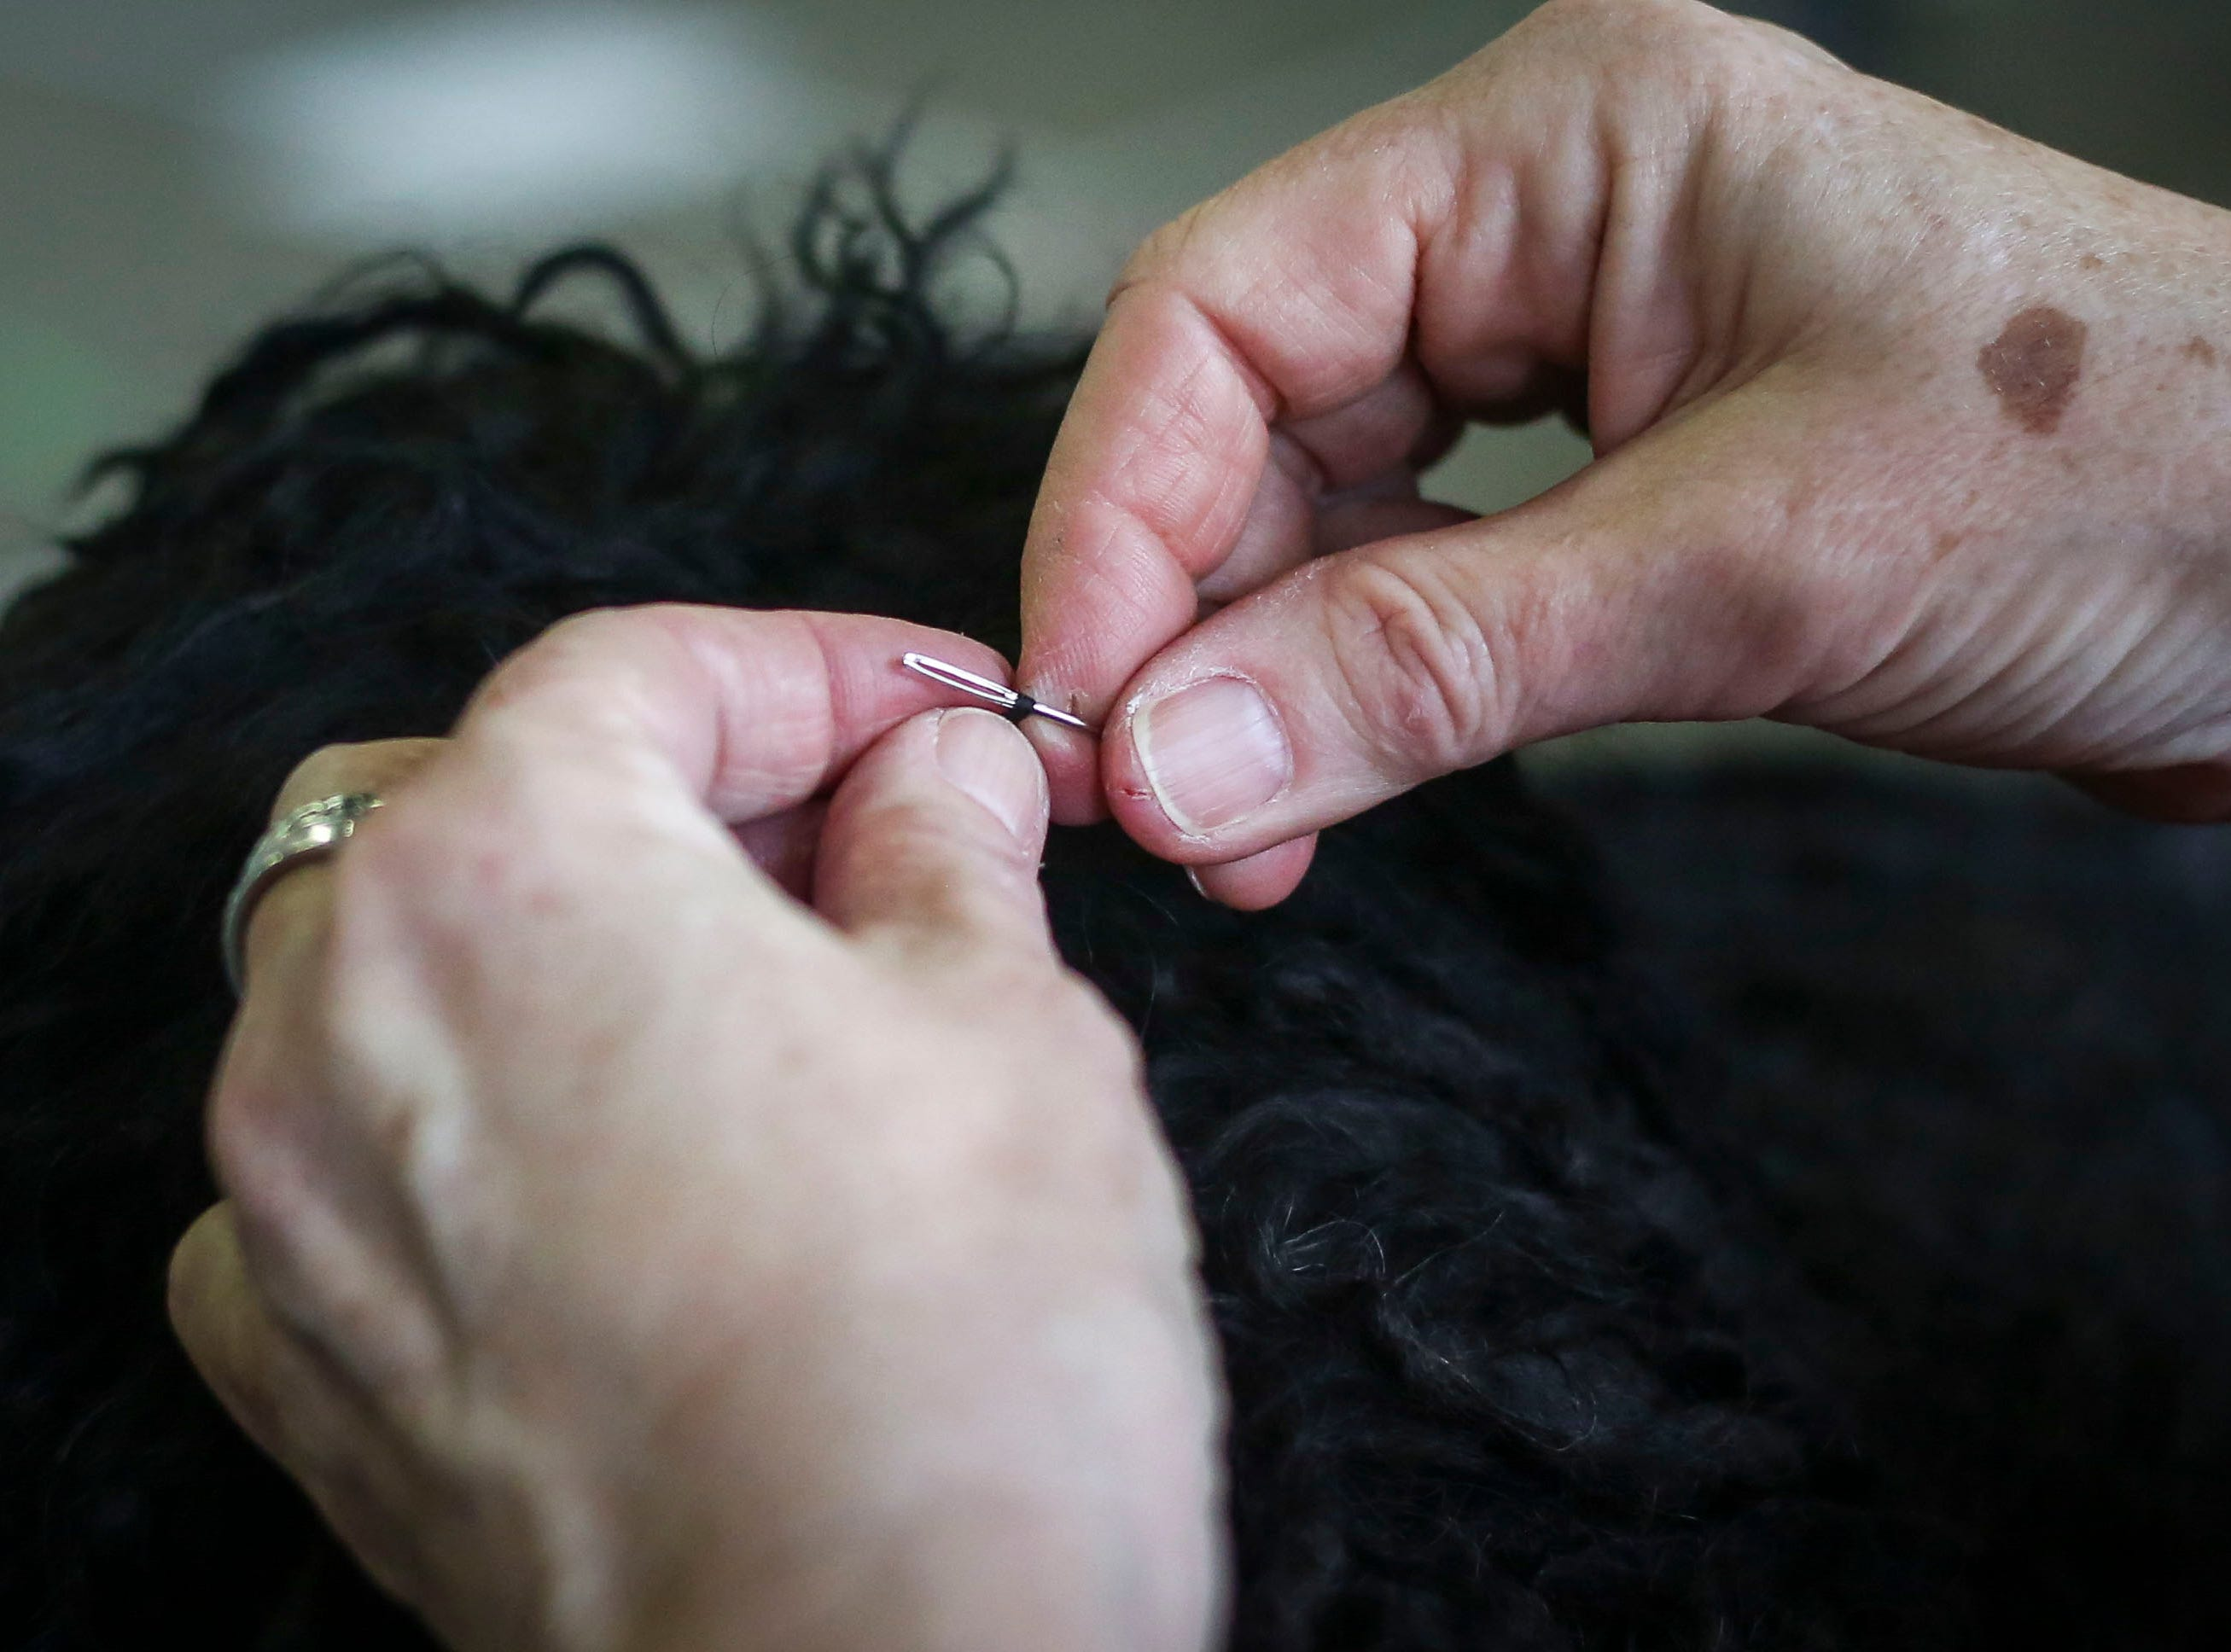 Juli Schuh fixes Parker's dreaklocks. Parker is a 6-year-old puli competing in the Kentuckiana Cluster of Dog Shows at the Kentucky Fair and Exposition Center in Louisville, Ky. on Thursday, March 14, 2019.